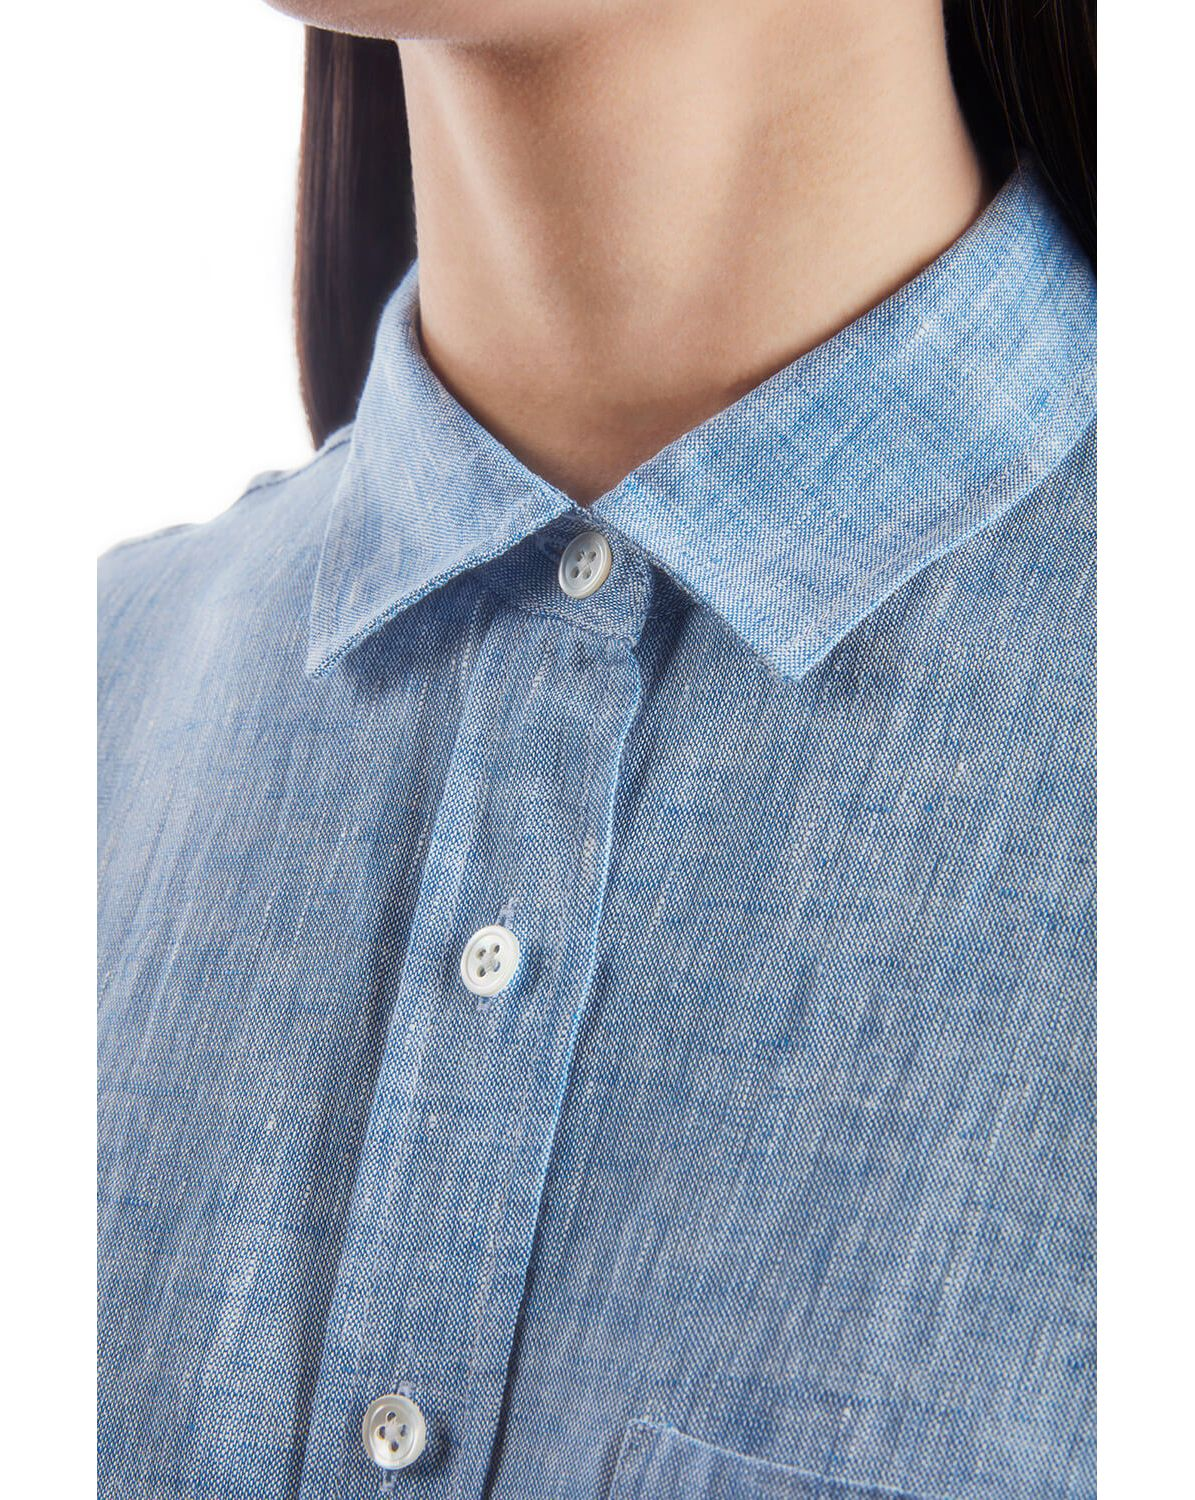 A woman wearing a chambray button down shirt